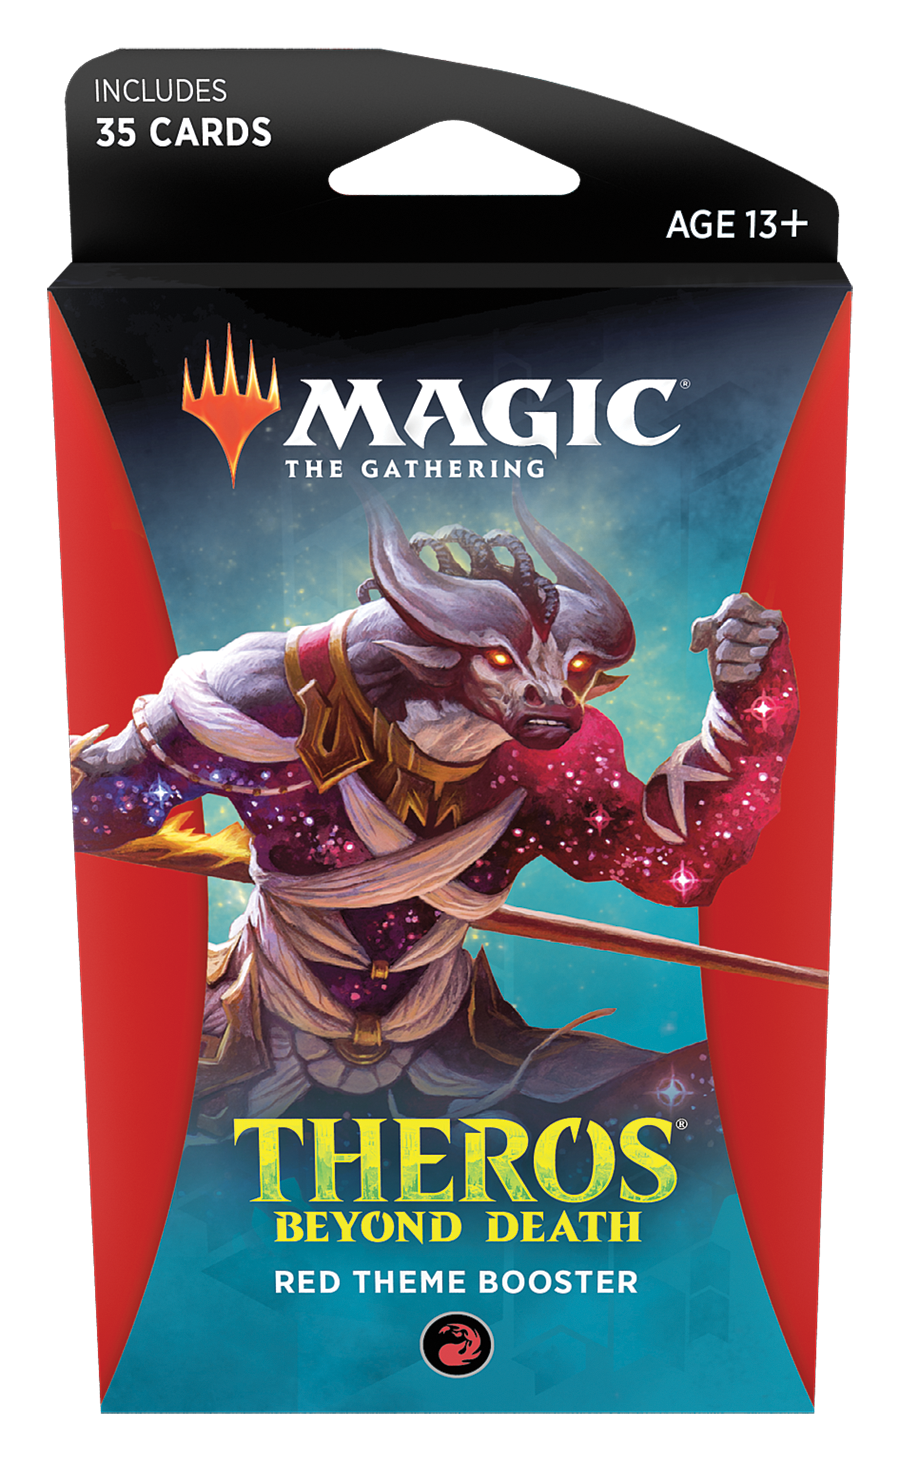 Magic The Gathering: Theros Beyond Death Theme Booster- Red image